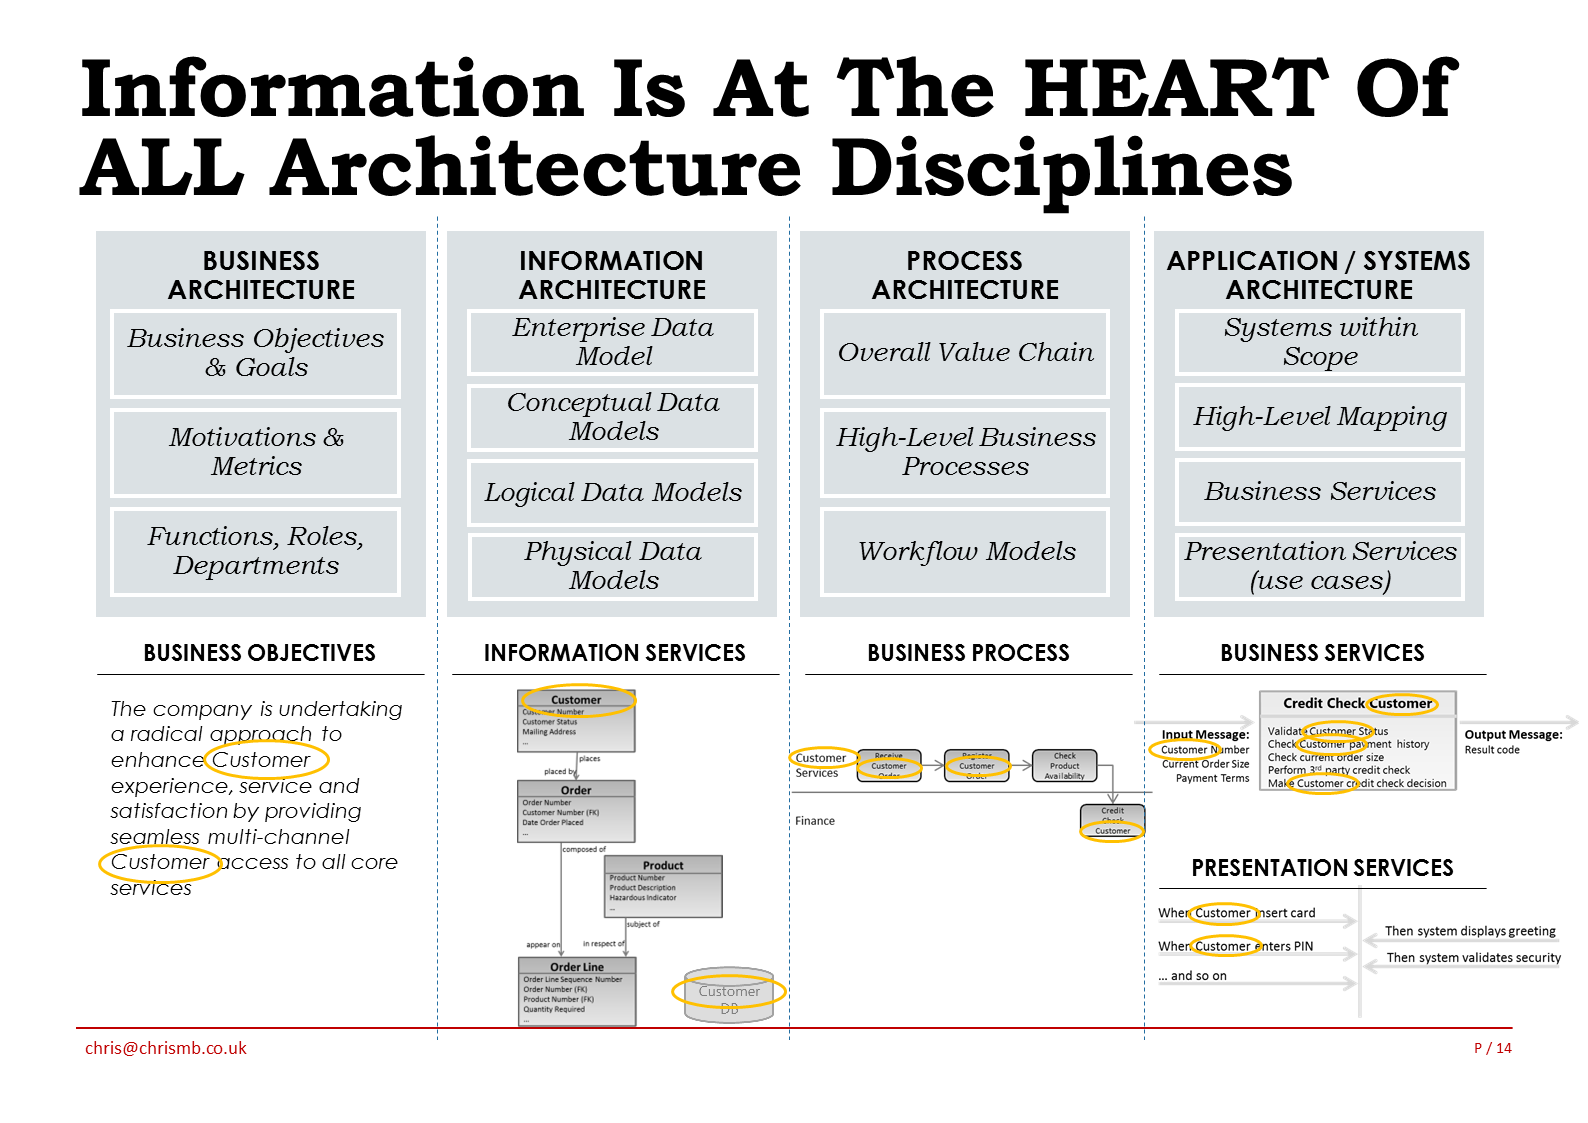 Data Model at the heart